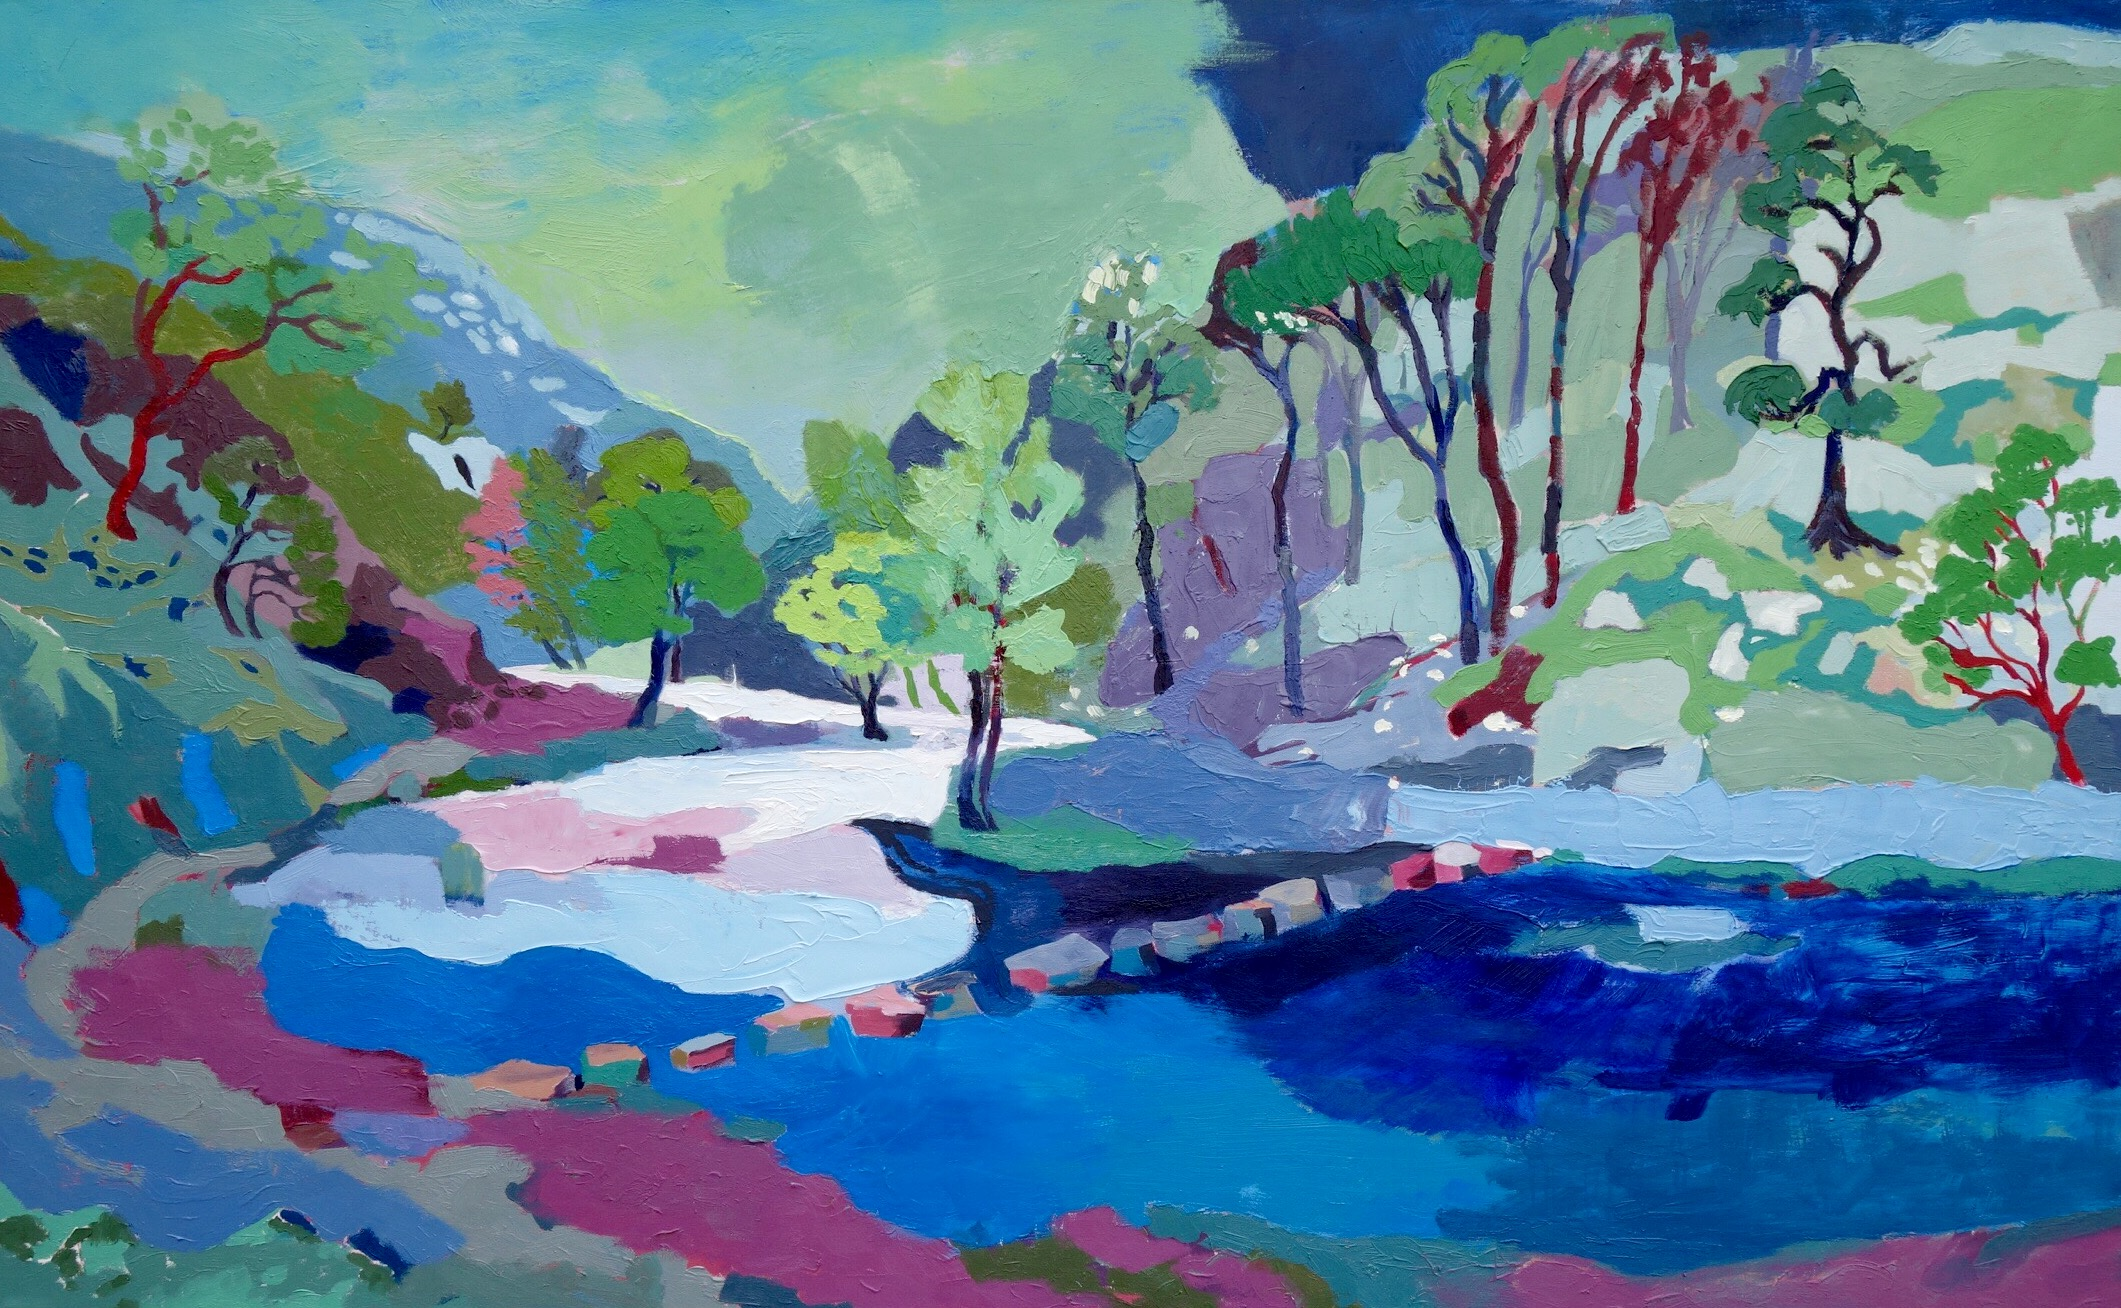 Dovedale Stormy Weather. Oil on canvas. 100 x 161.5 cm